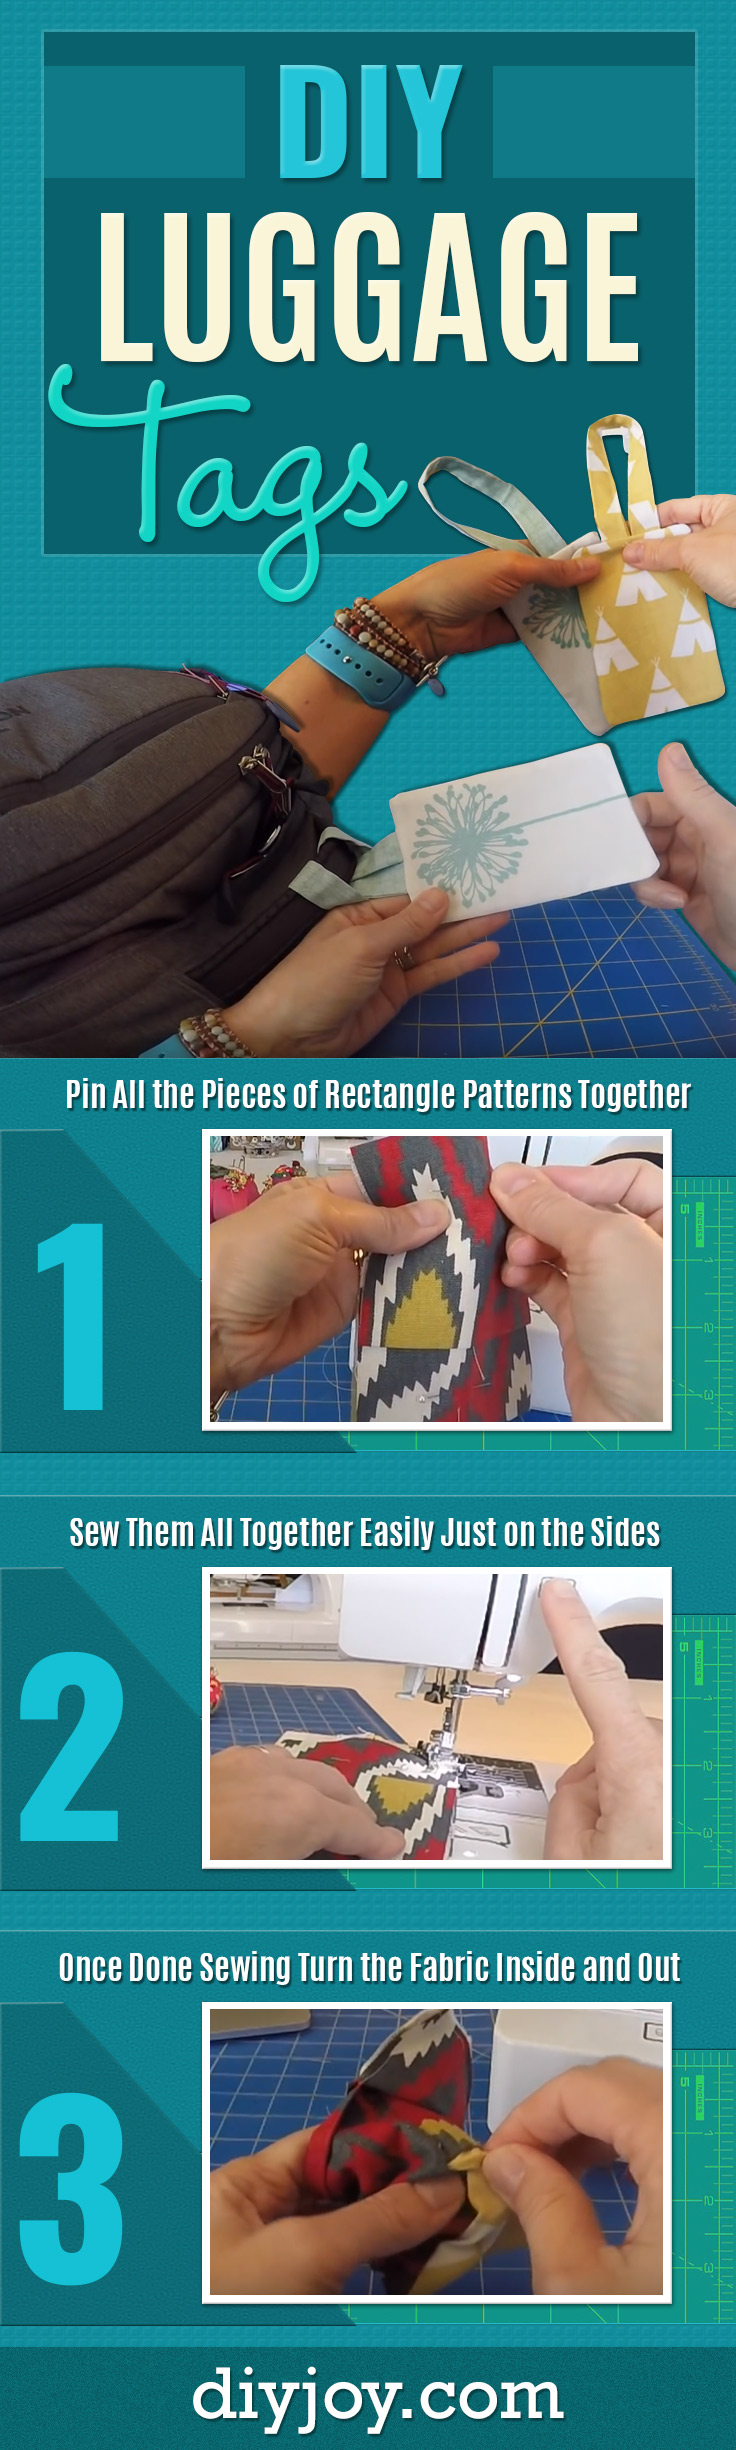 Easy To Make DIY Luggage Tags - Cheap and Quick Gift Idea and Easy Sewing Tutorial - Easy DIY Gifts for Friends and Family Who Like To Travel